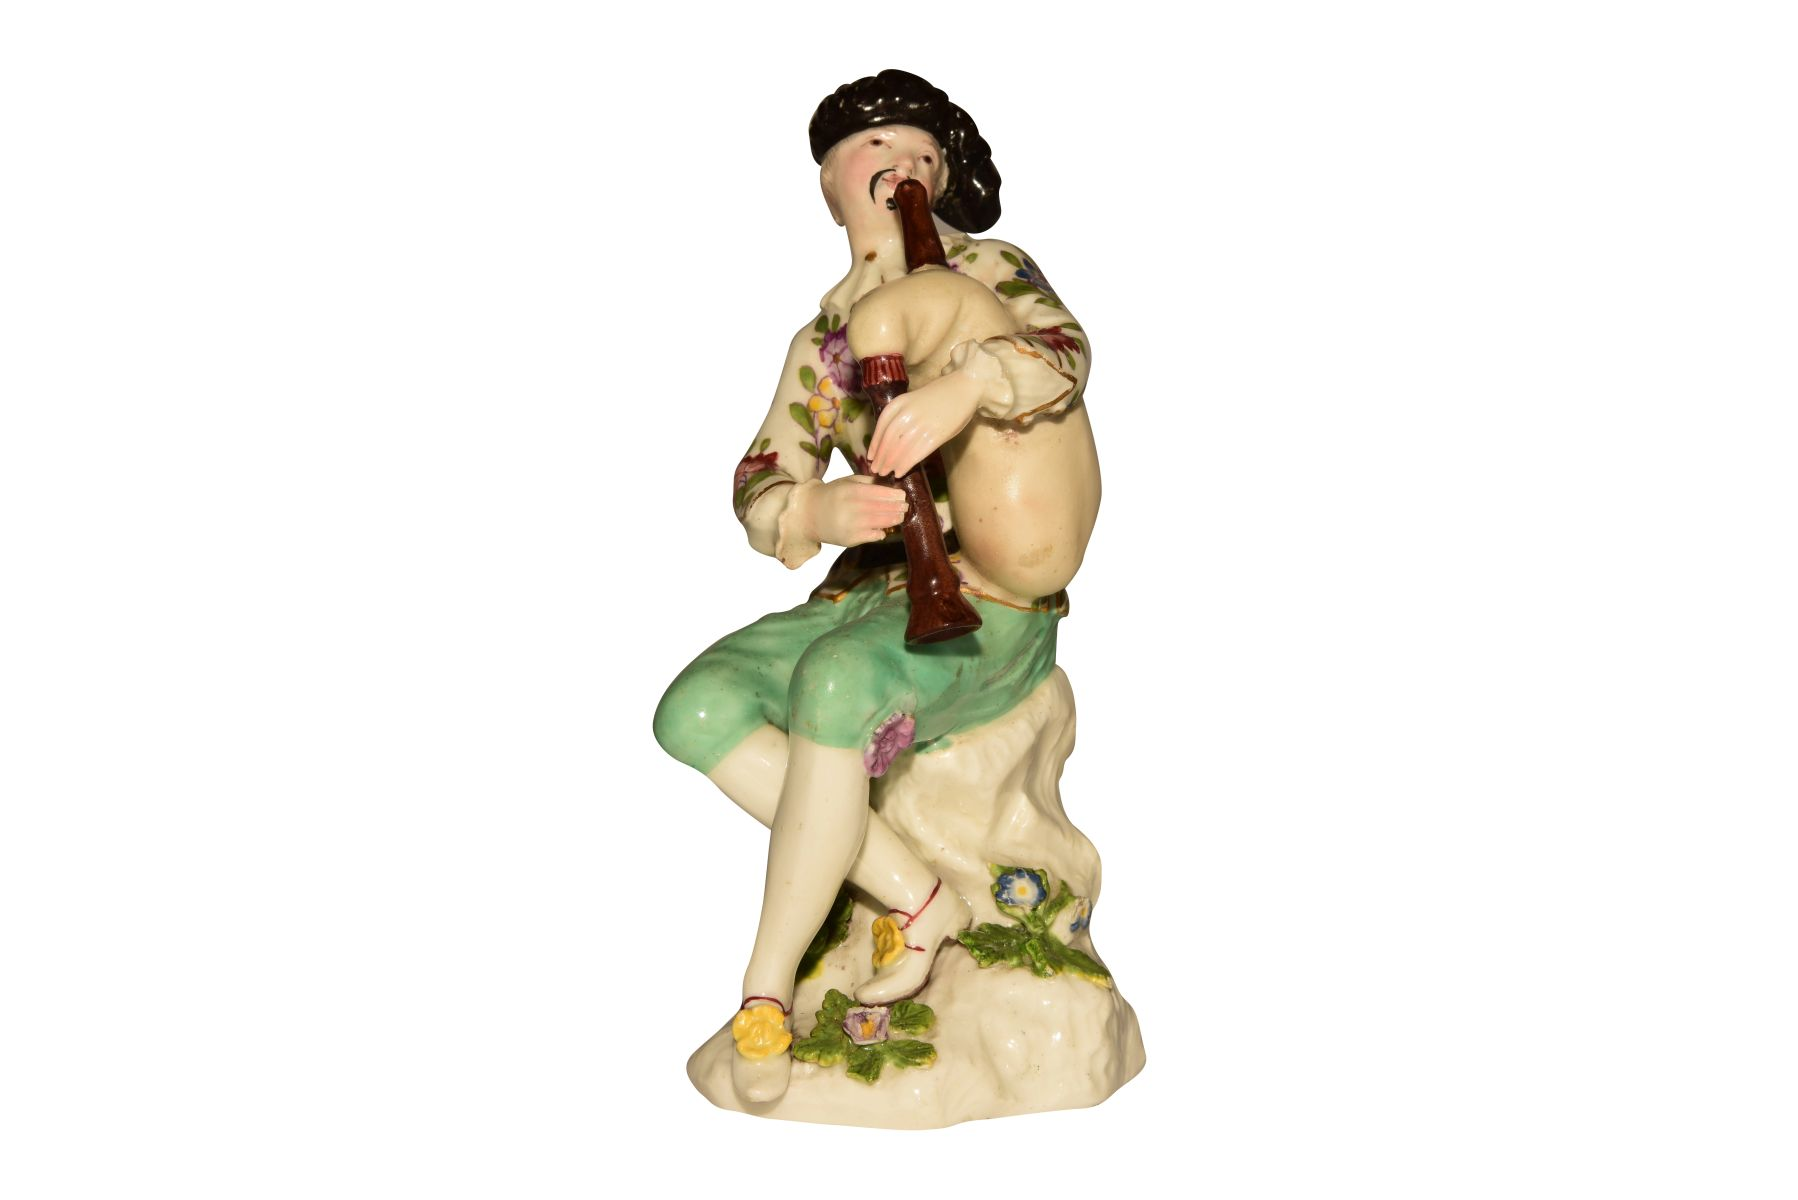 #128 Harlequin with bagpipes Meissen 1745 | Image